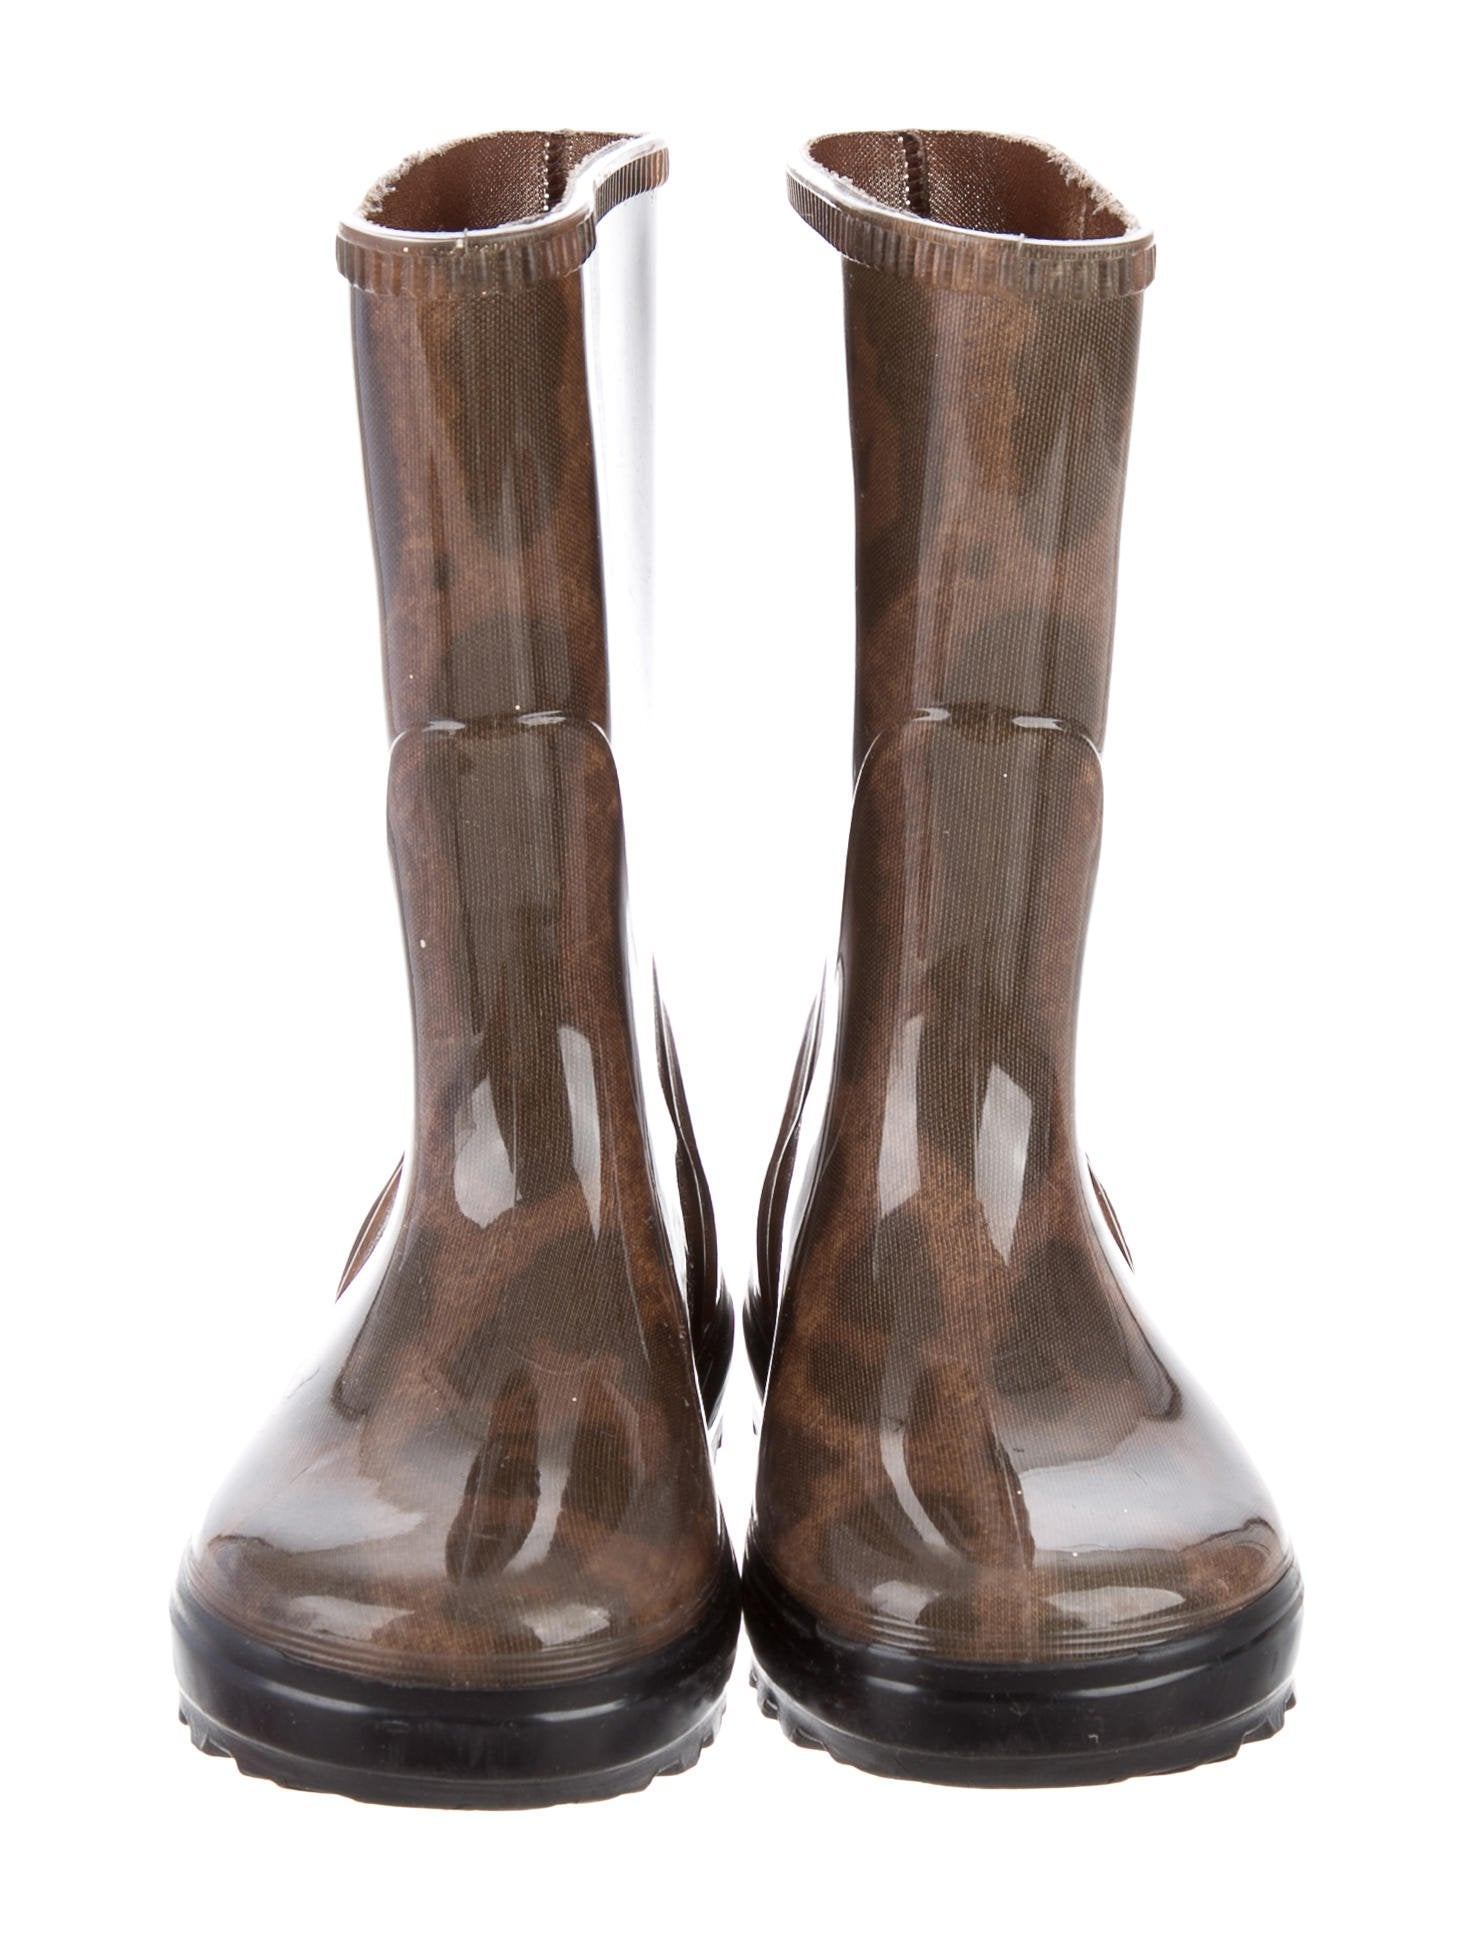 Find great deals on eBay for pattern rain boots. Shop with confidence.